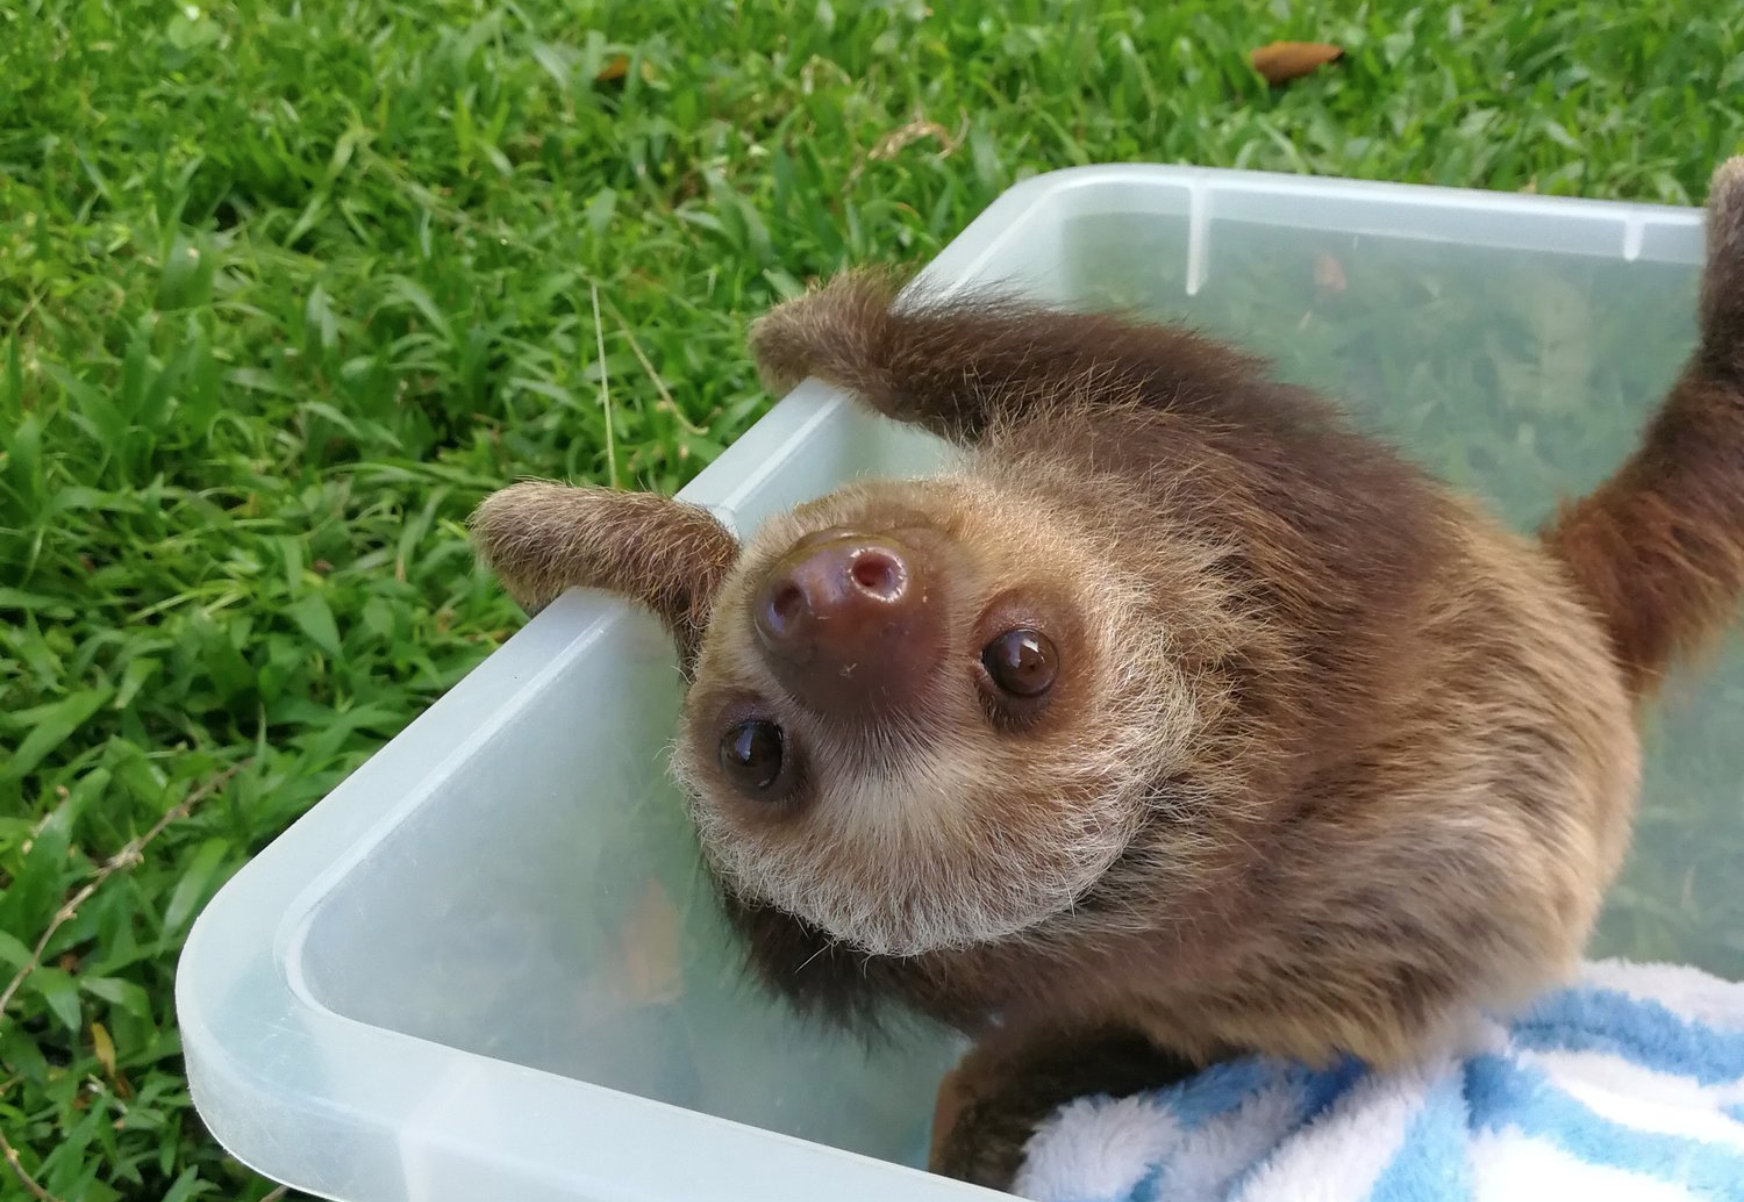 Why This Precious Baby Sloth Thinks a Teddy Bear Is His Mother Will Make You Sniffle